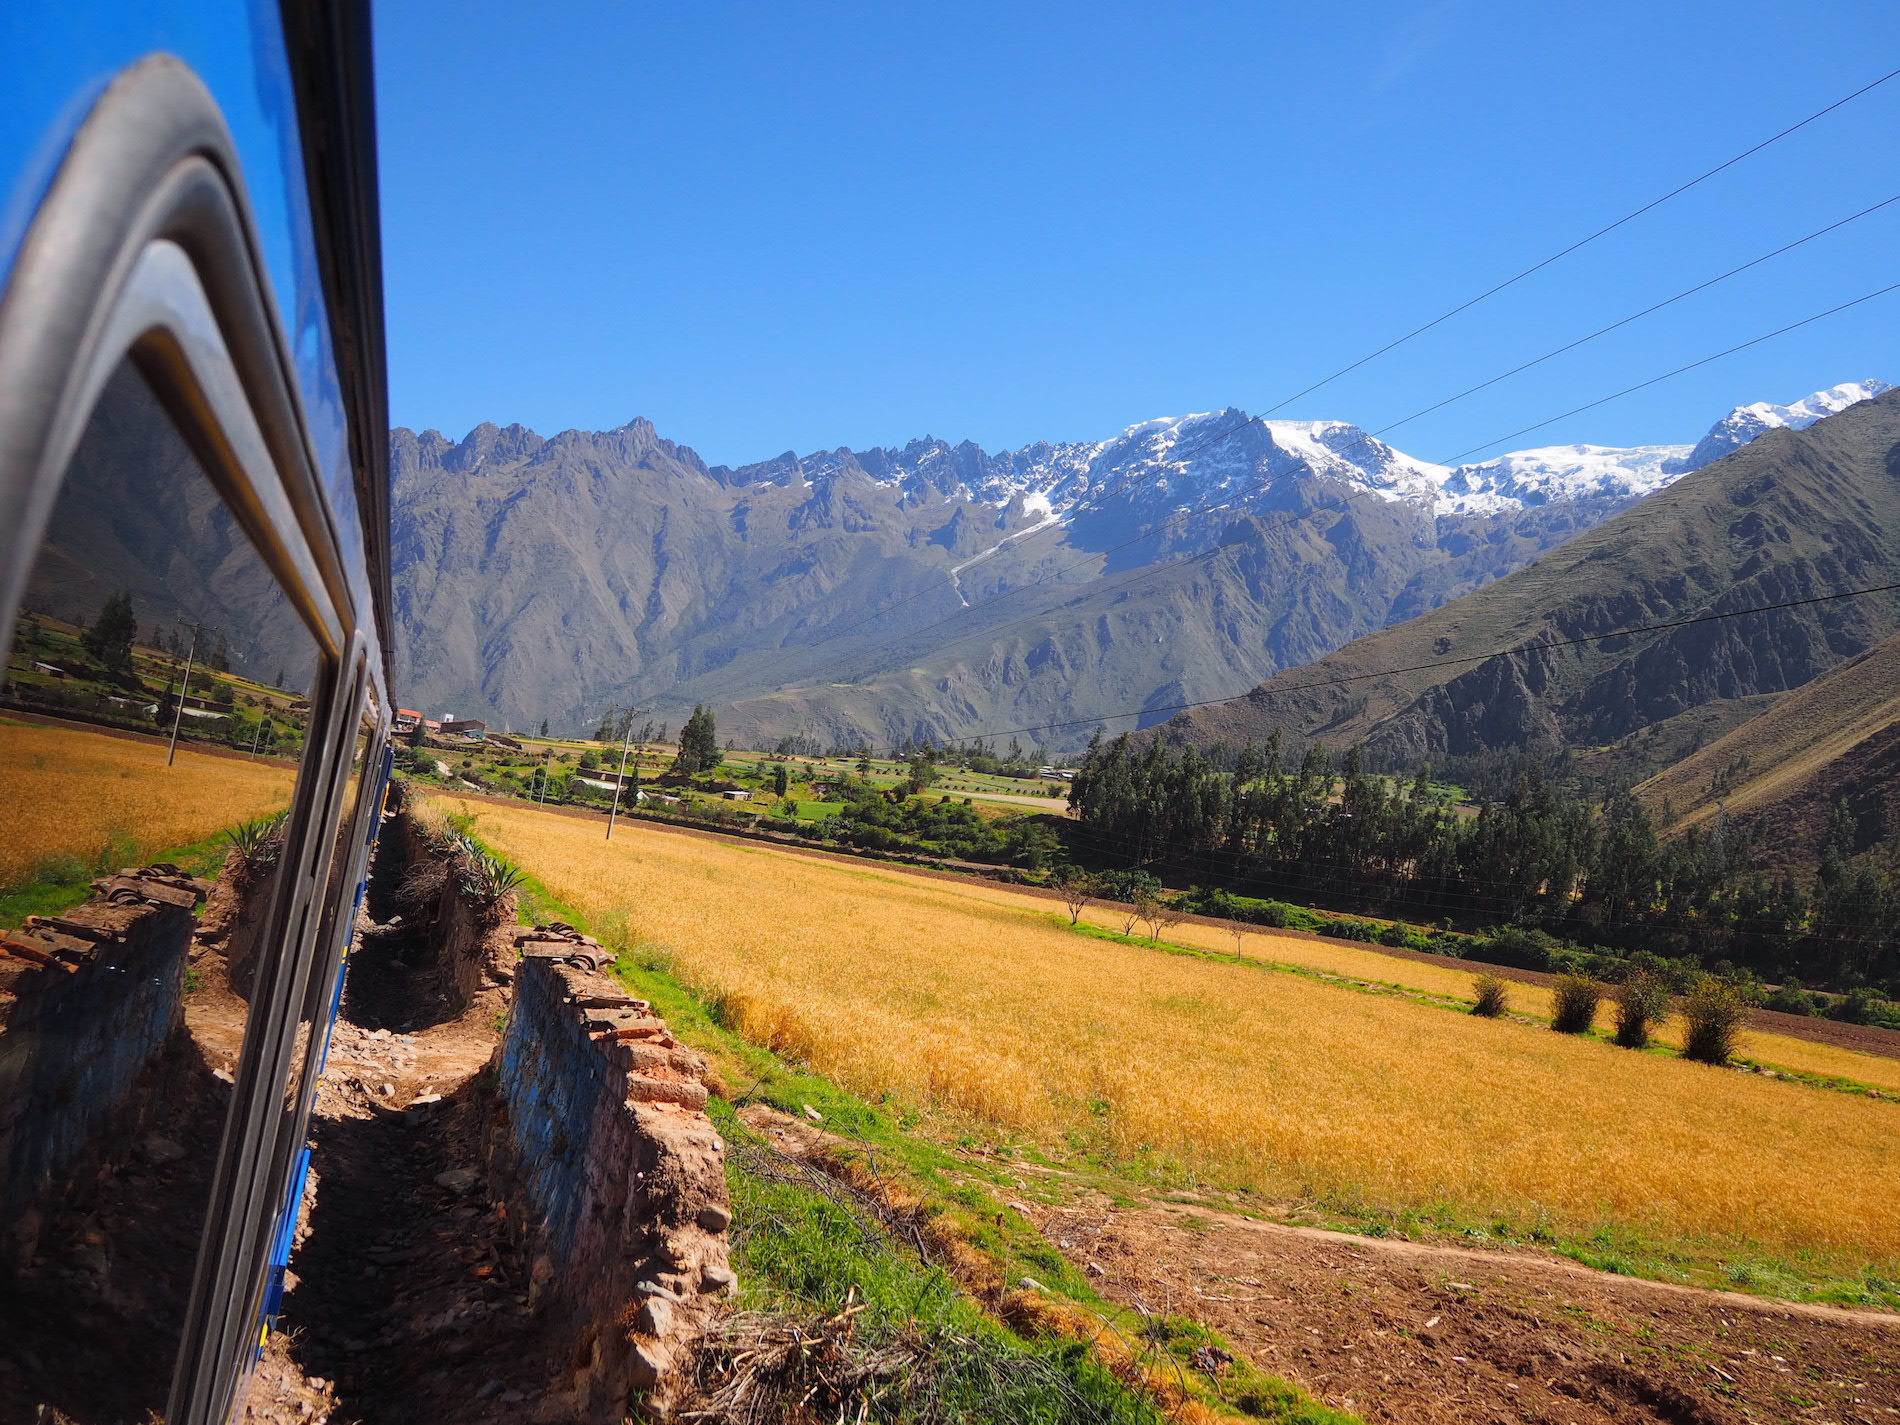 Train to Aguas Calientes, Peru